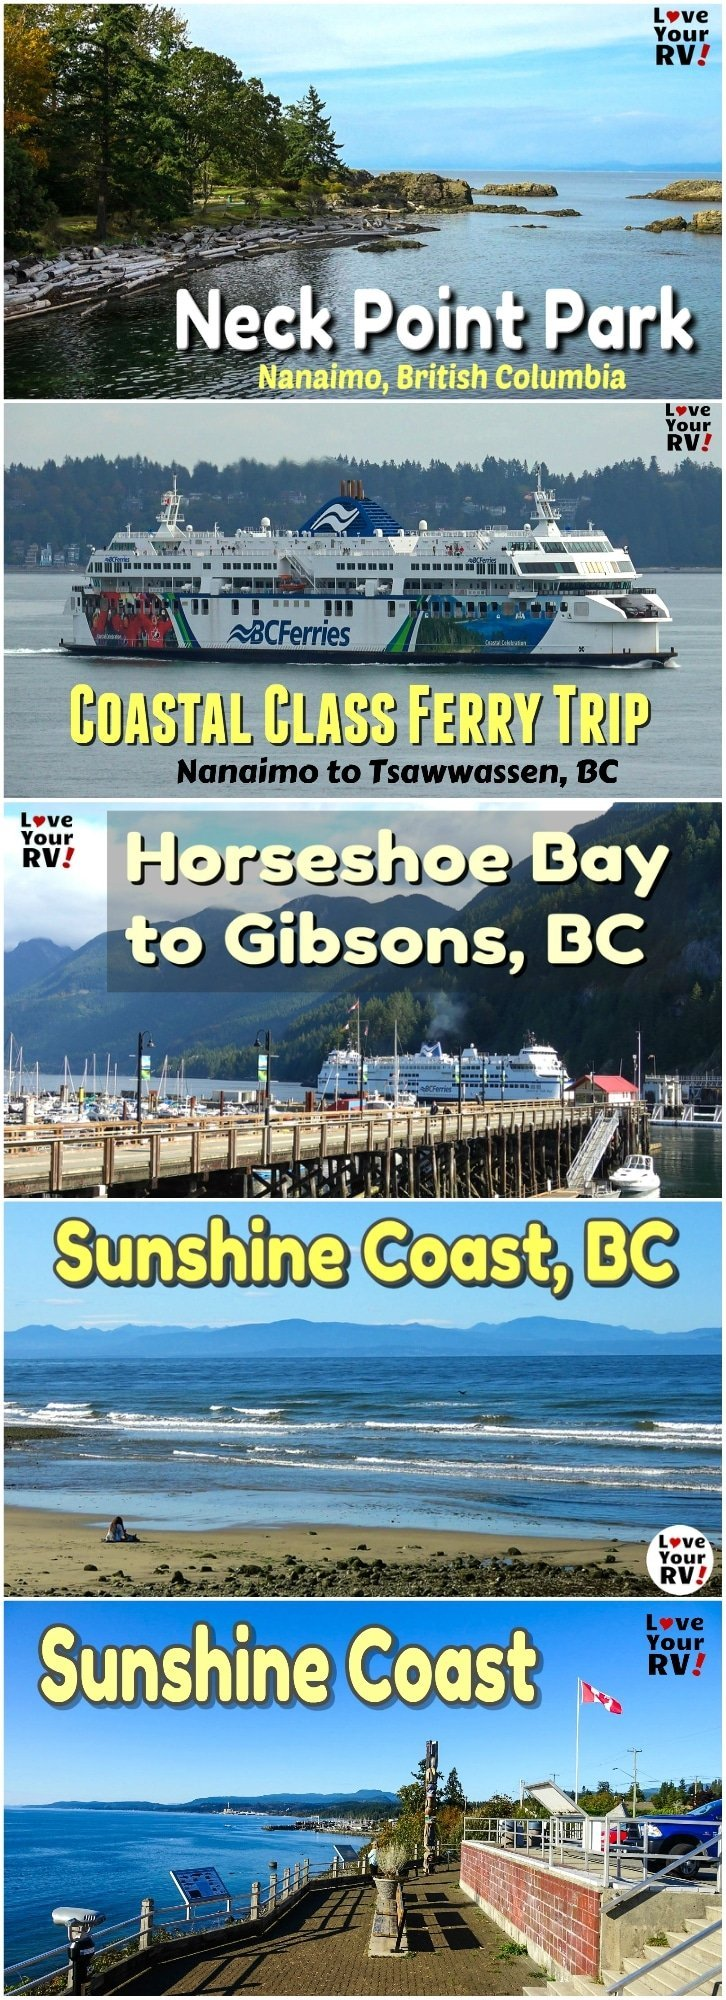 Getaway trip to Explore the Sunshine Coast of British Columbia